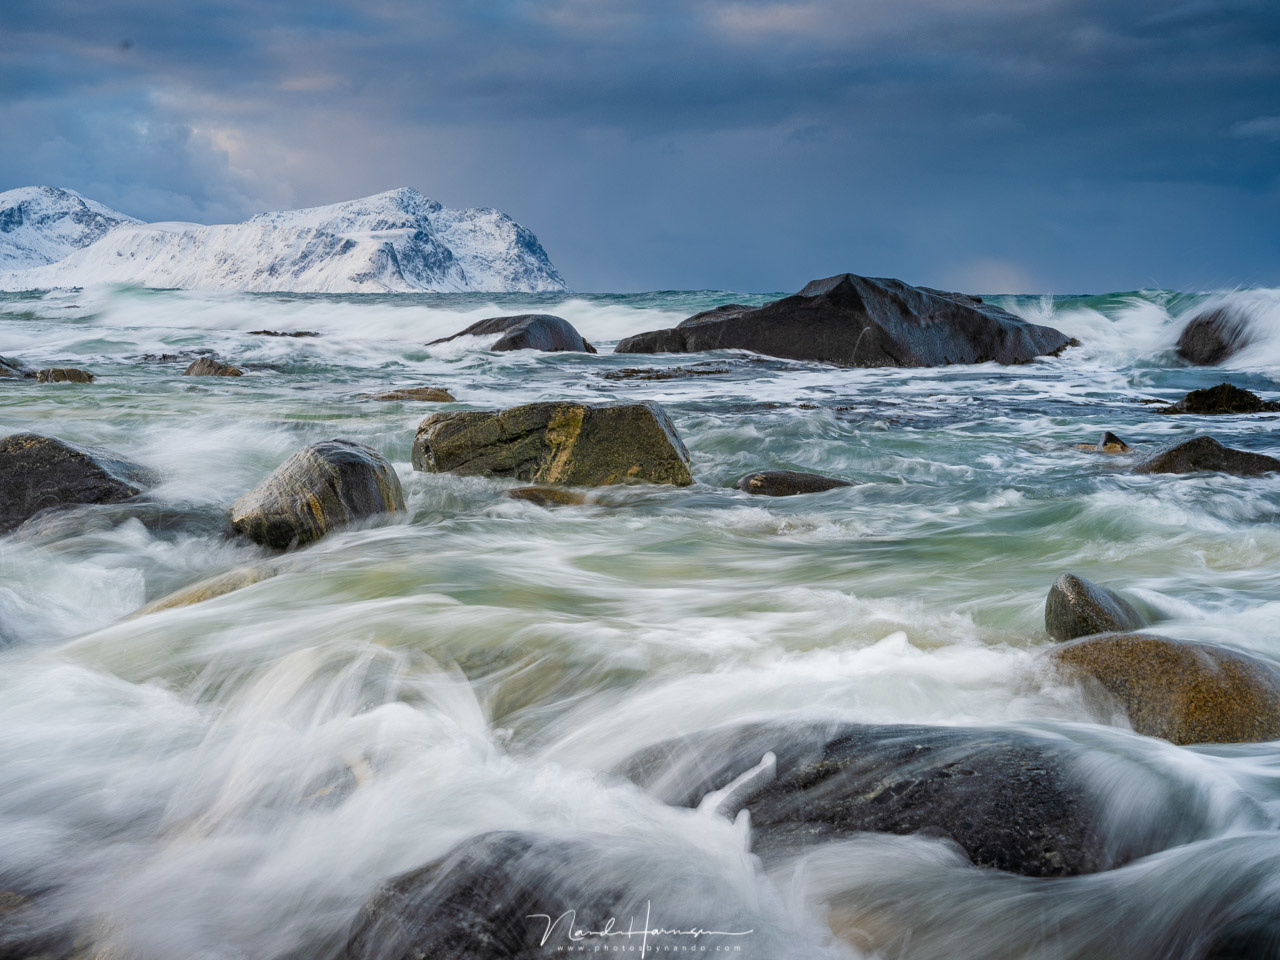 Shooting on a beach at Lofoten with the tides coming in. Working with the Haida filterholder is really easy, which allows you to keep an eye on the waves. (63mm | ISO400 | f/22 | 1/9s | Haida 0,9GND medium + CPL)